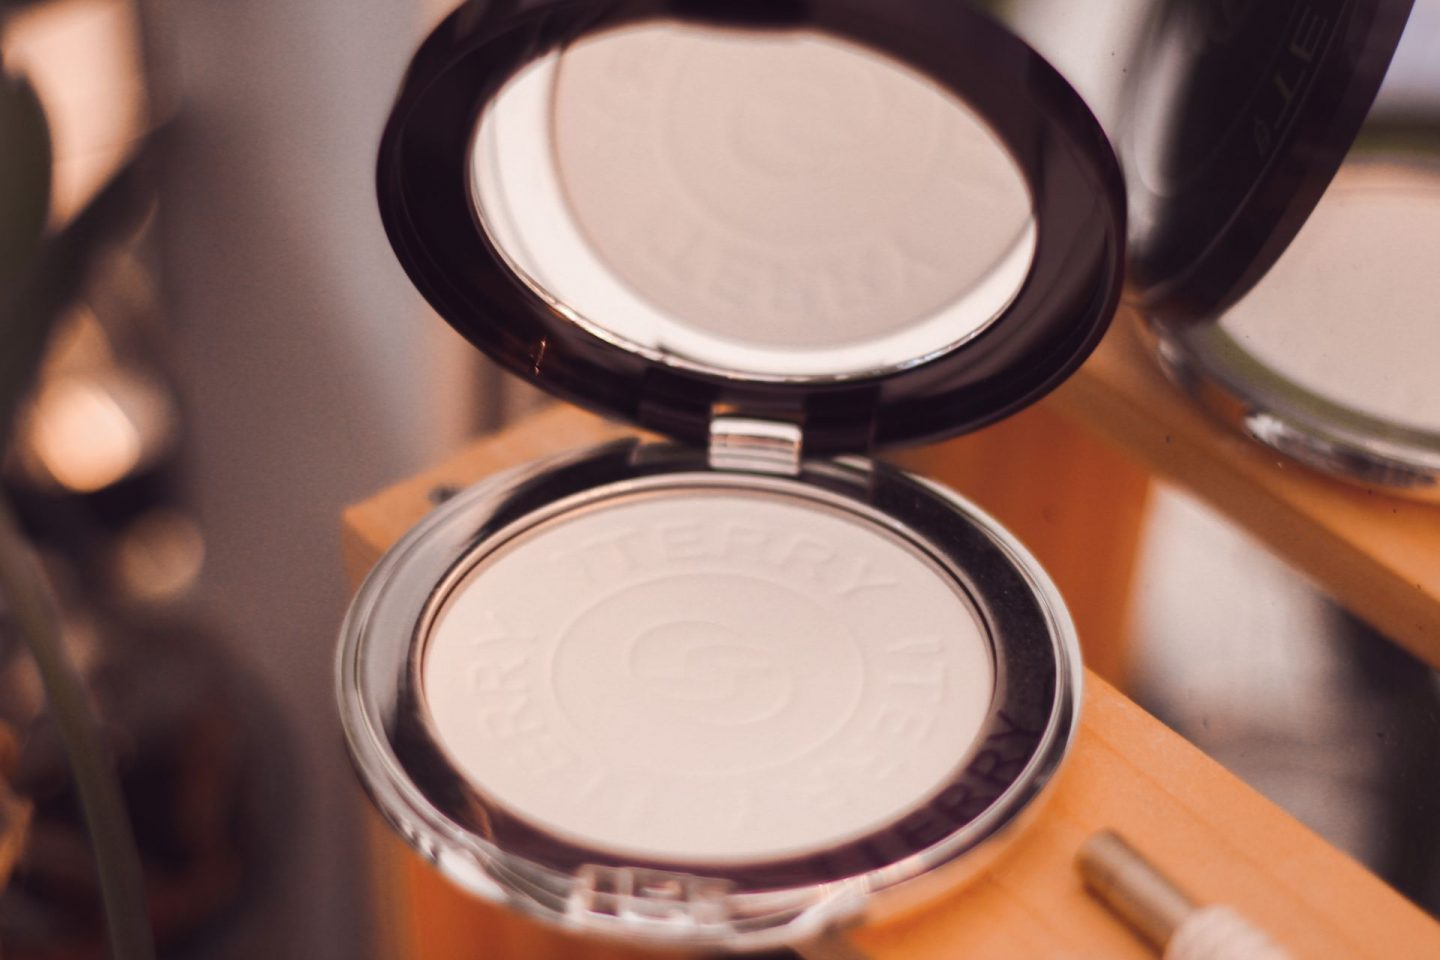 by terry hyaluronic powder